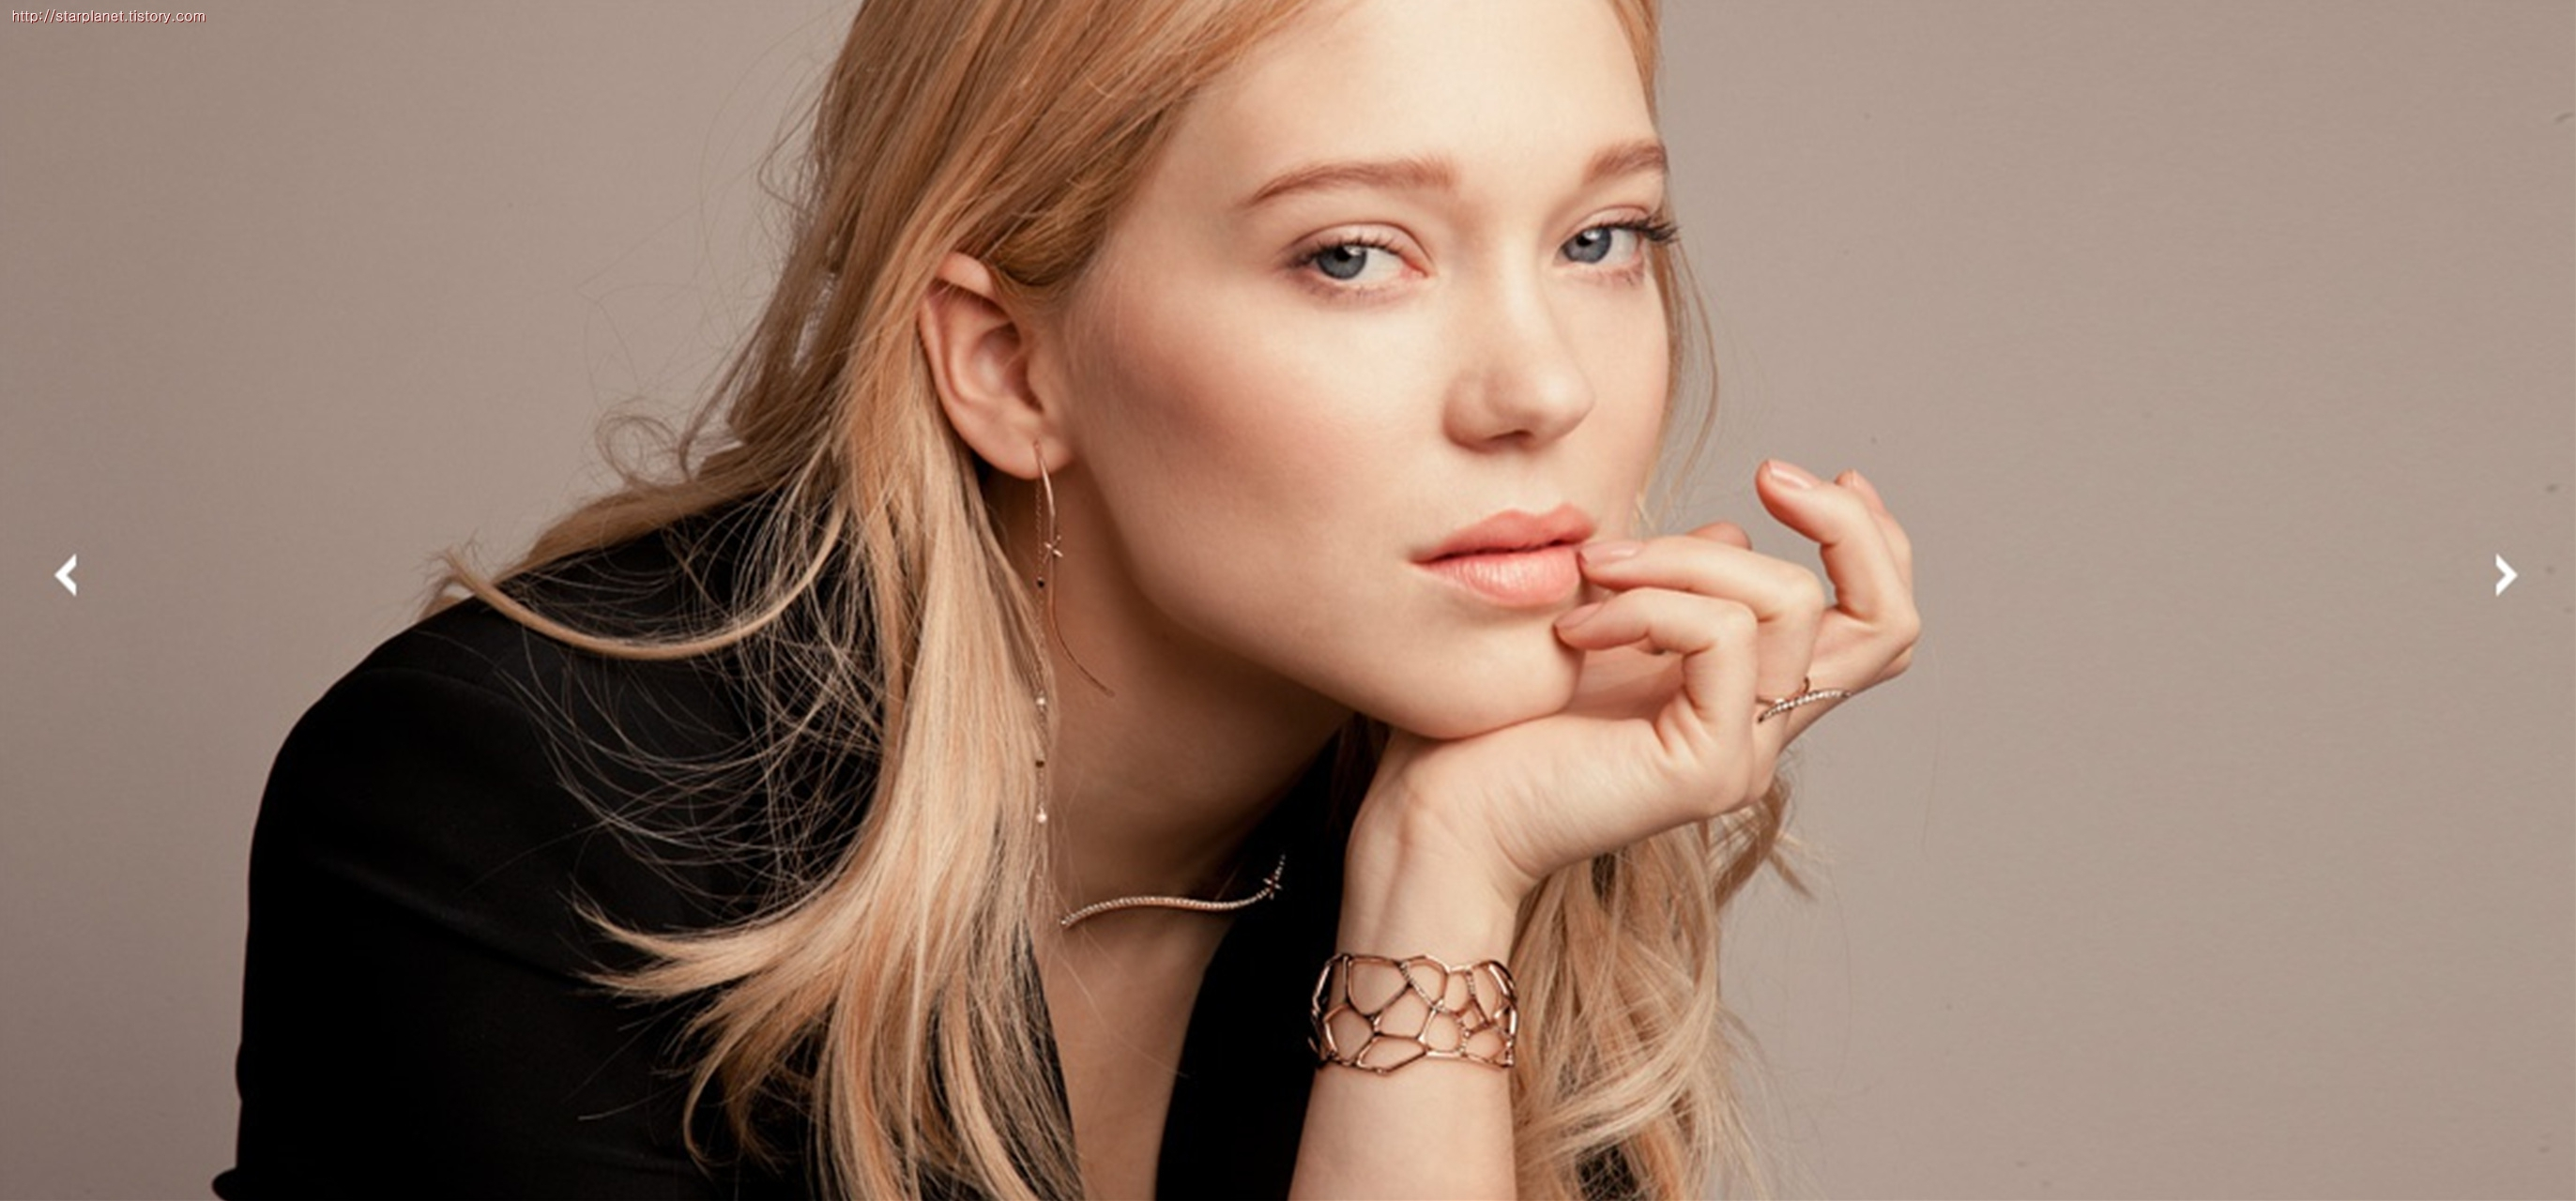 Lea Seydoux Wallpapers Images Photos Pictures Backgrounds